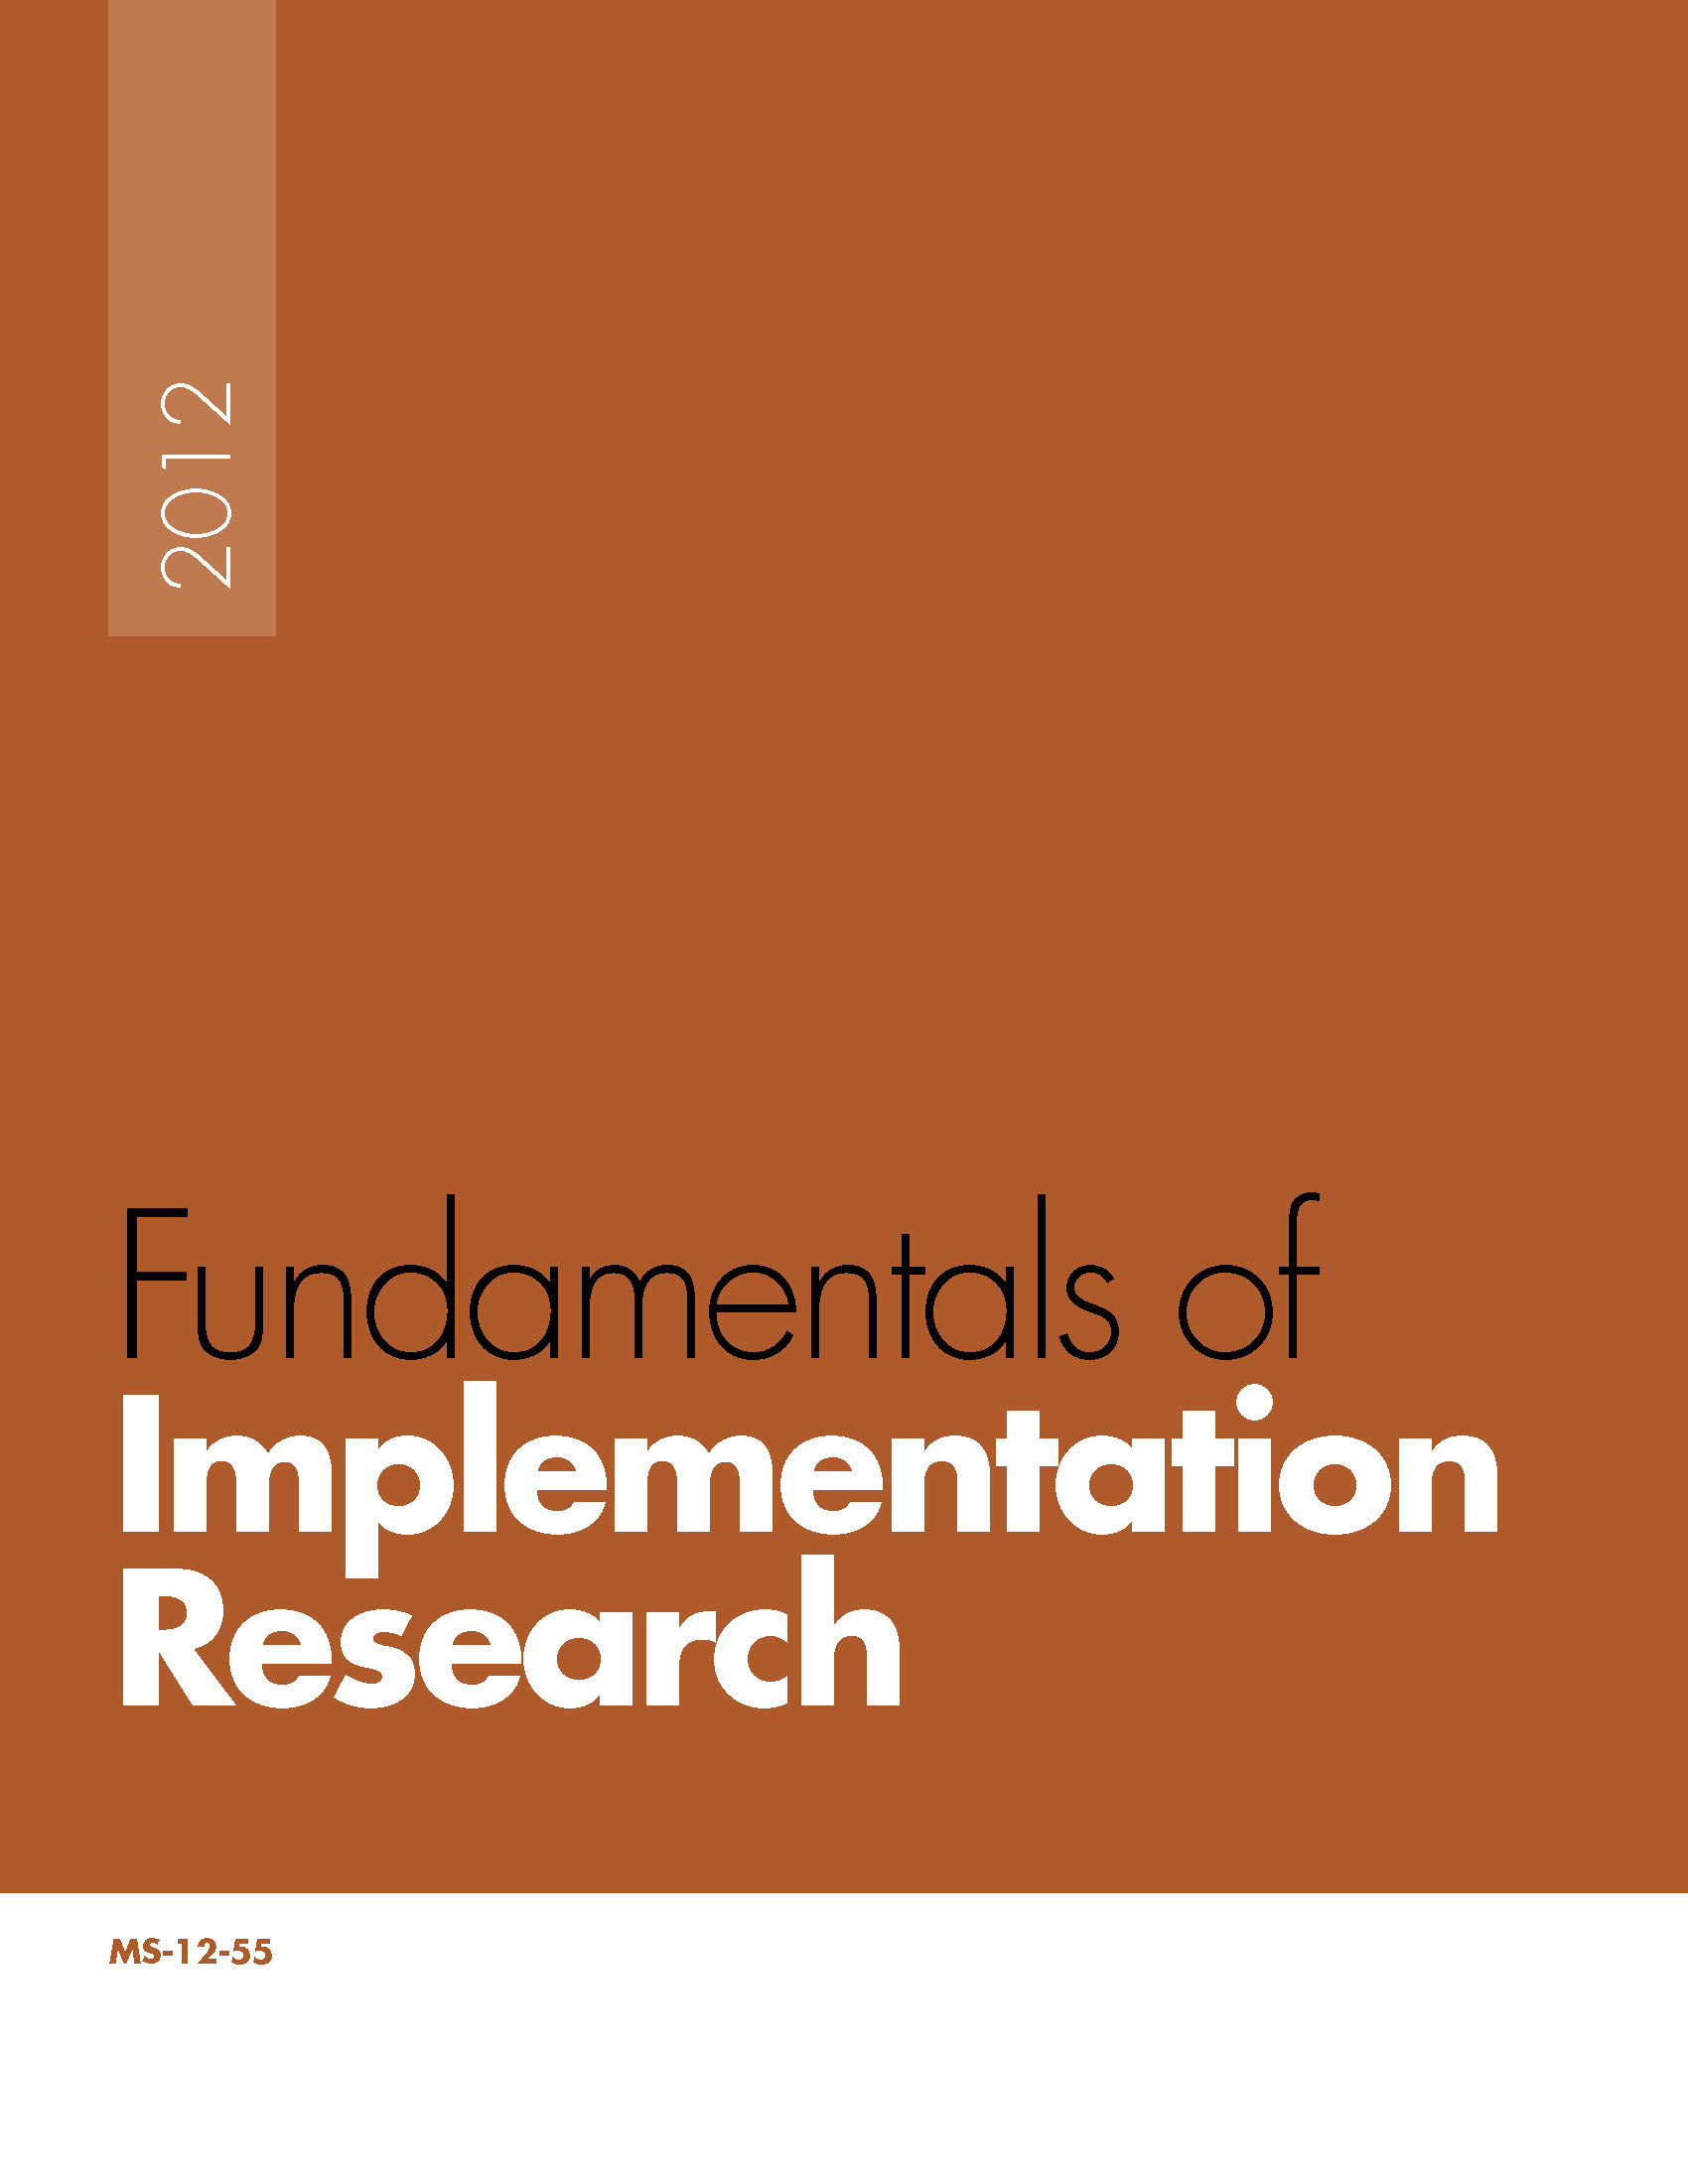 Fundamentals of Implementation Research